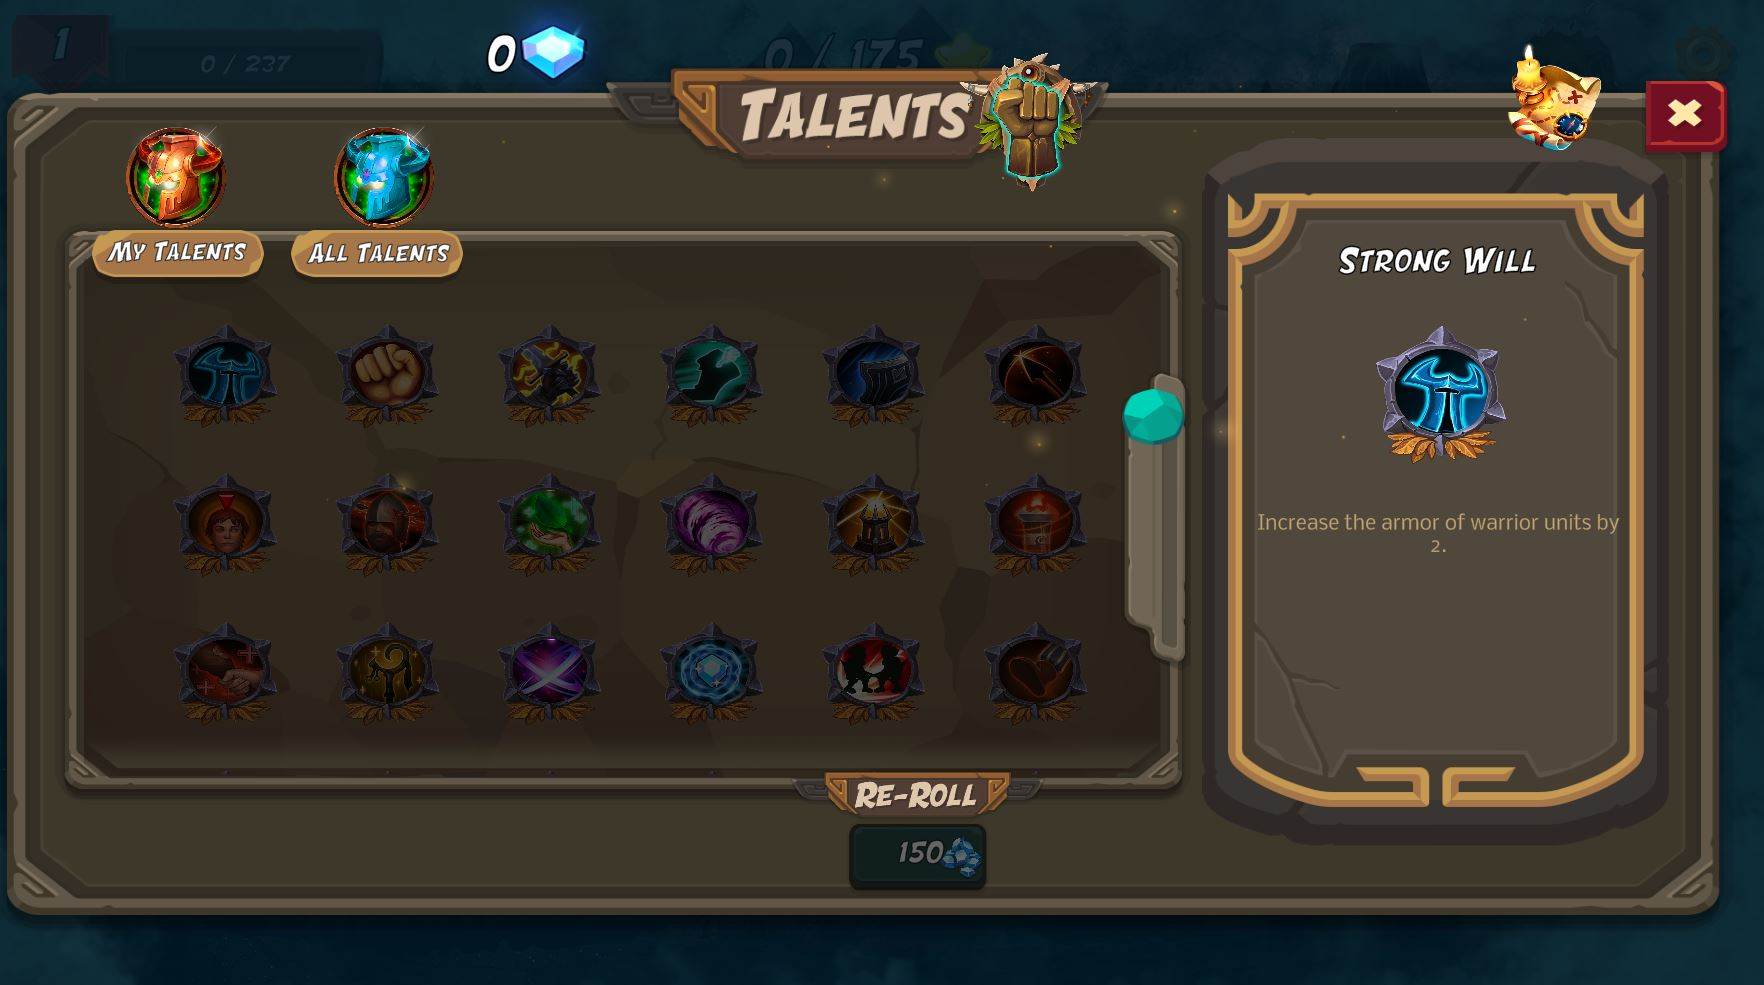 talents menu